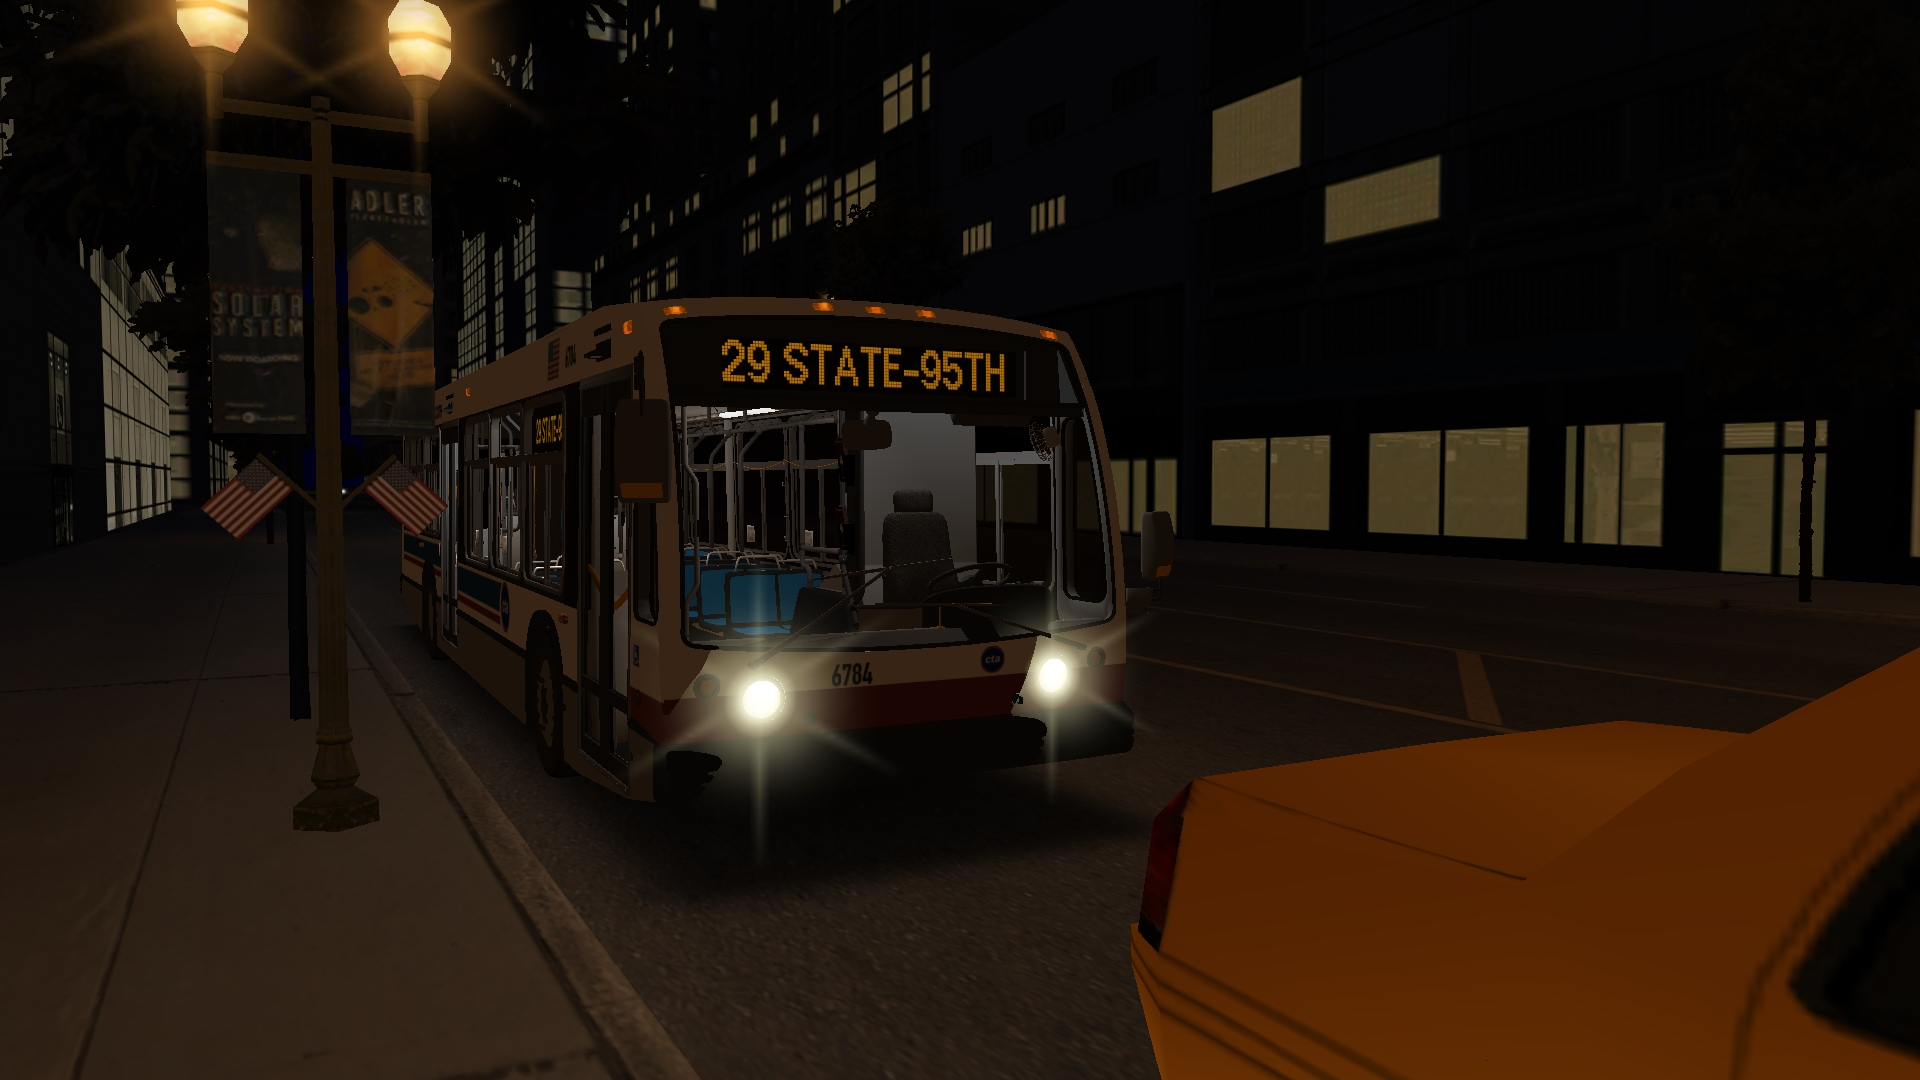 CTA bus simulator releasing soon - Page 7 - CTA Bus - Chicago